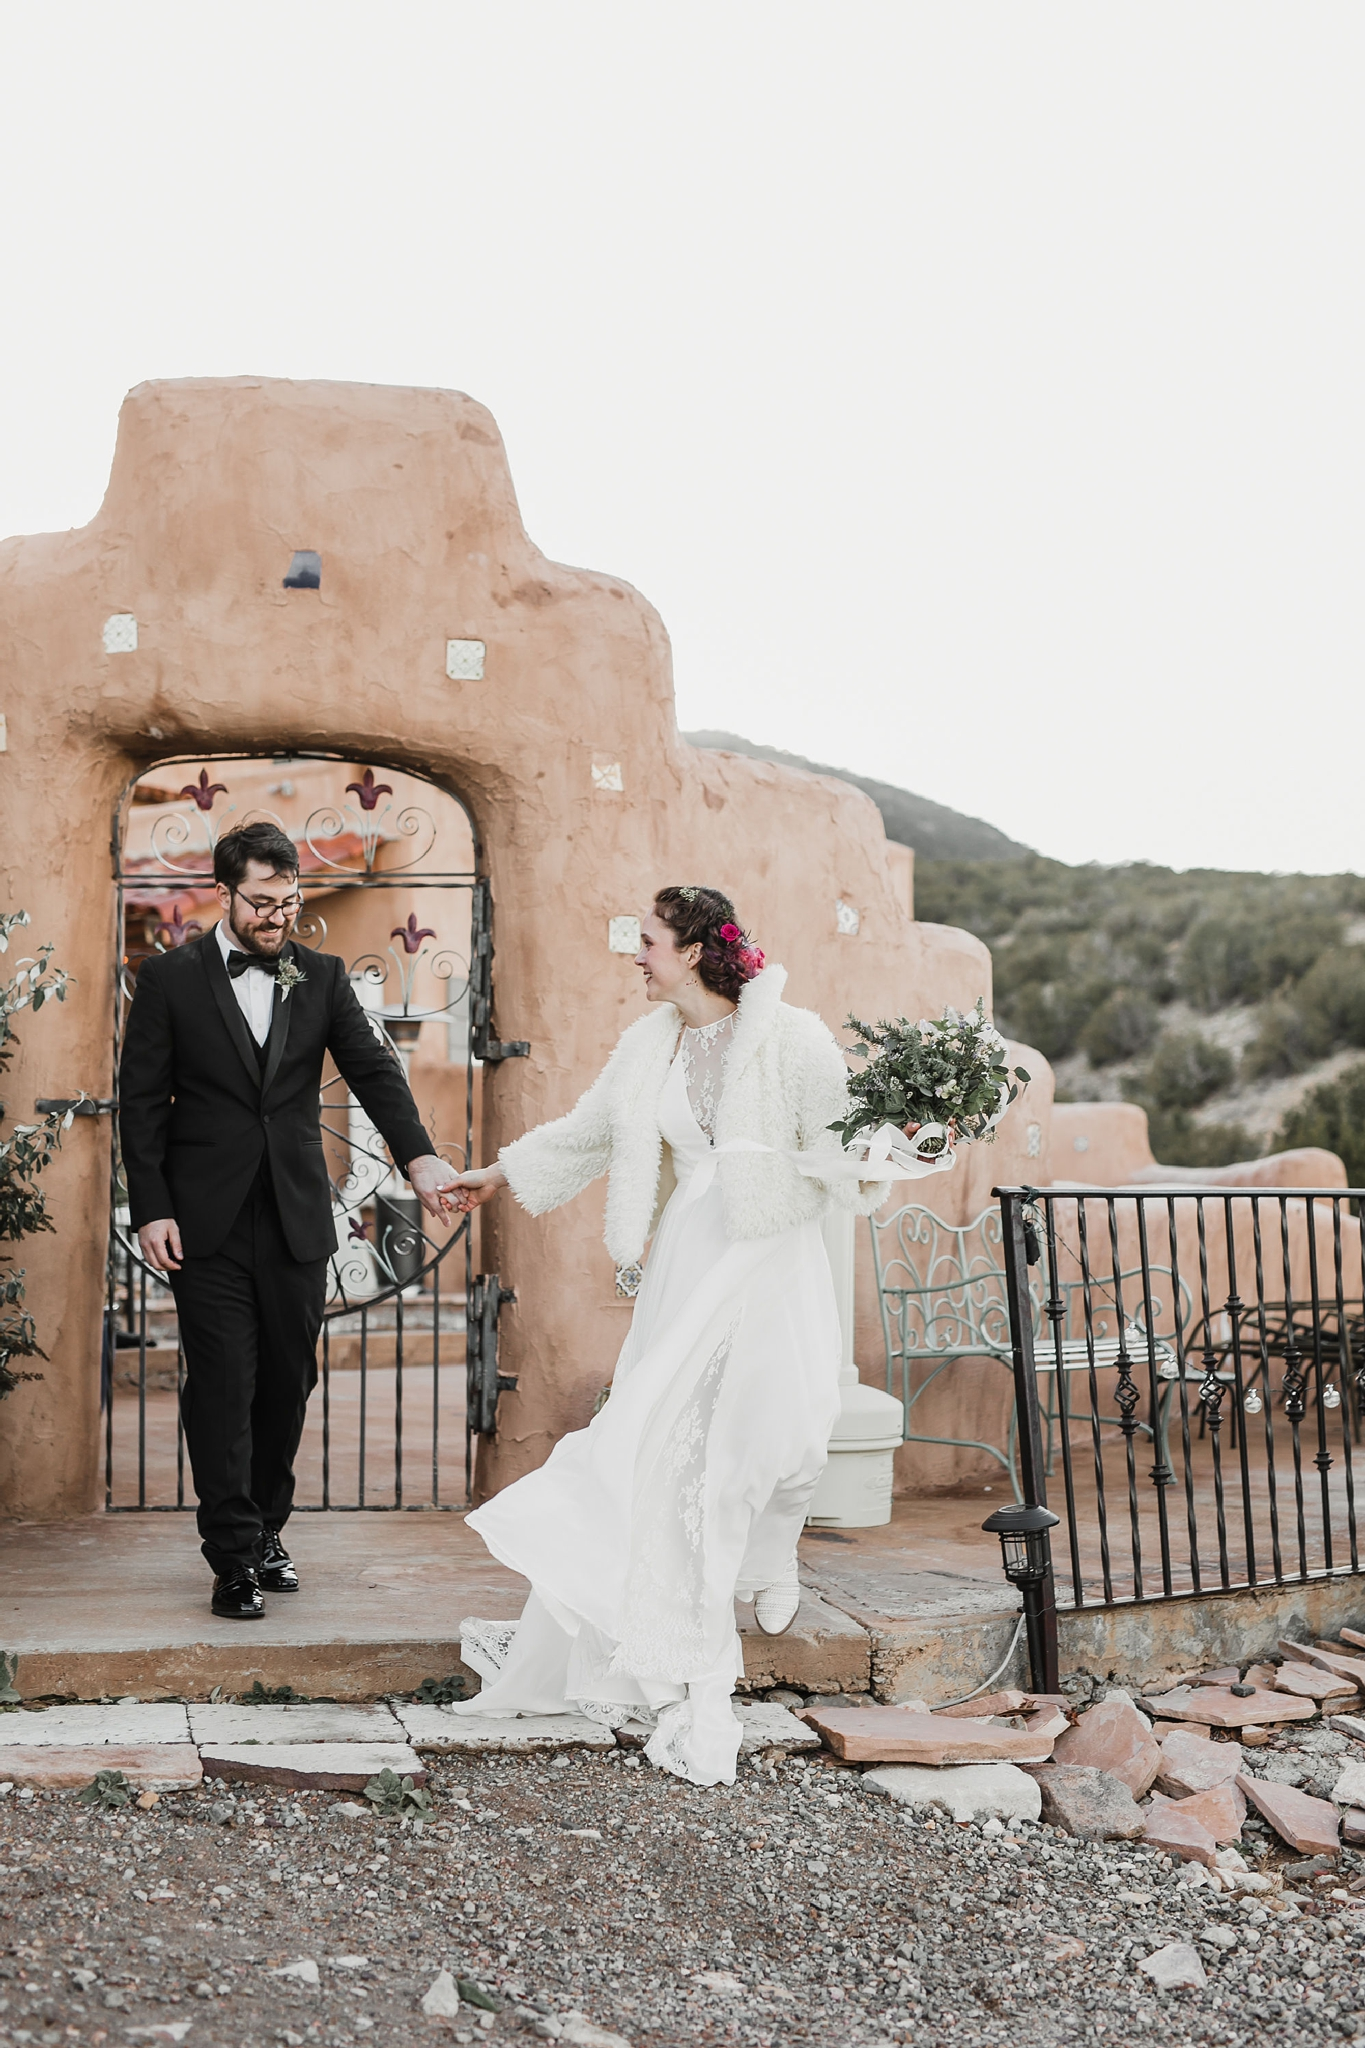 Alicia+lucia+photography+-+albuquerque+wedding+photographer+-+santa+fe+wedding+photography+-+new+mexico+wedding+photographer+-+new+mexico+wedding+-+engagement+-+santa+fe+wedding+-+hacienda+dona+andrea+-+hacienda+dona+andrea+wedding_0070.jpg